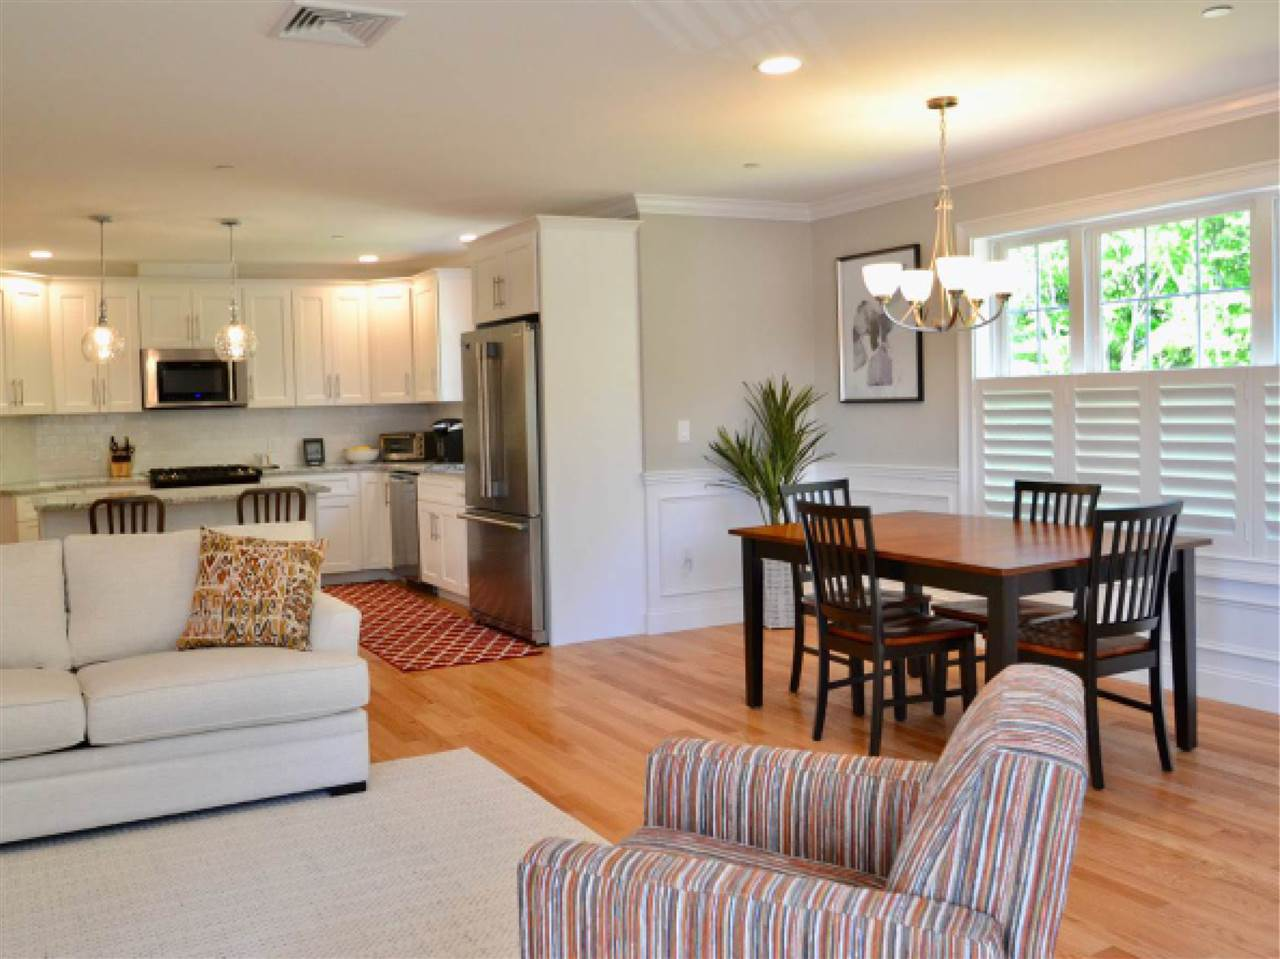 Bright, open and flexible floor plan for one level of living.